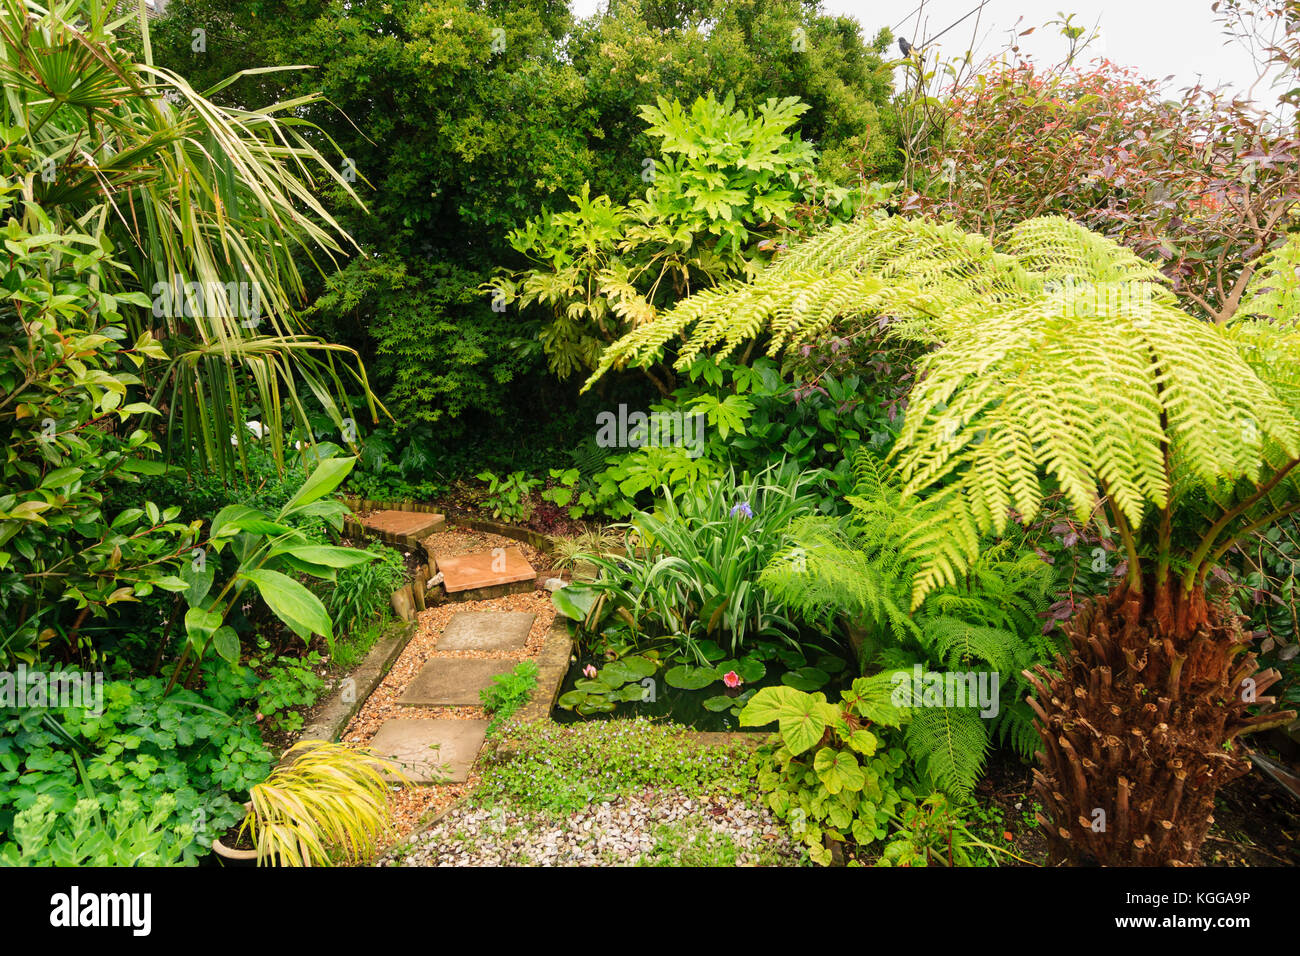 small-garden-pond-in-an-exotic-garden-in-plymouth-uk-surrounded-by-KGGA9P.jpg